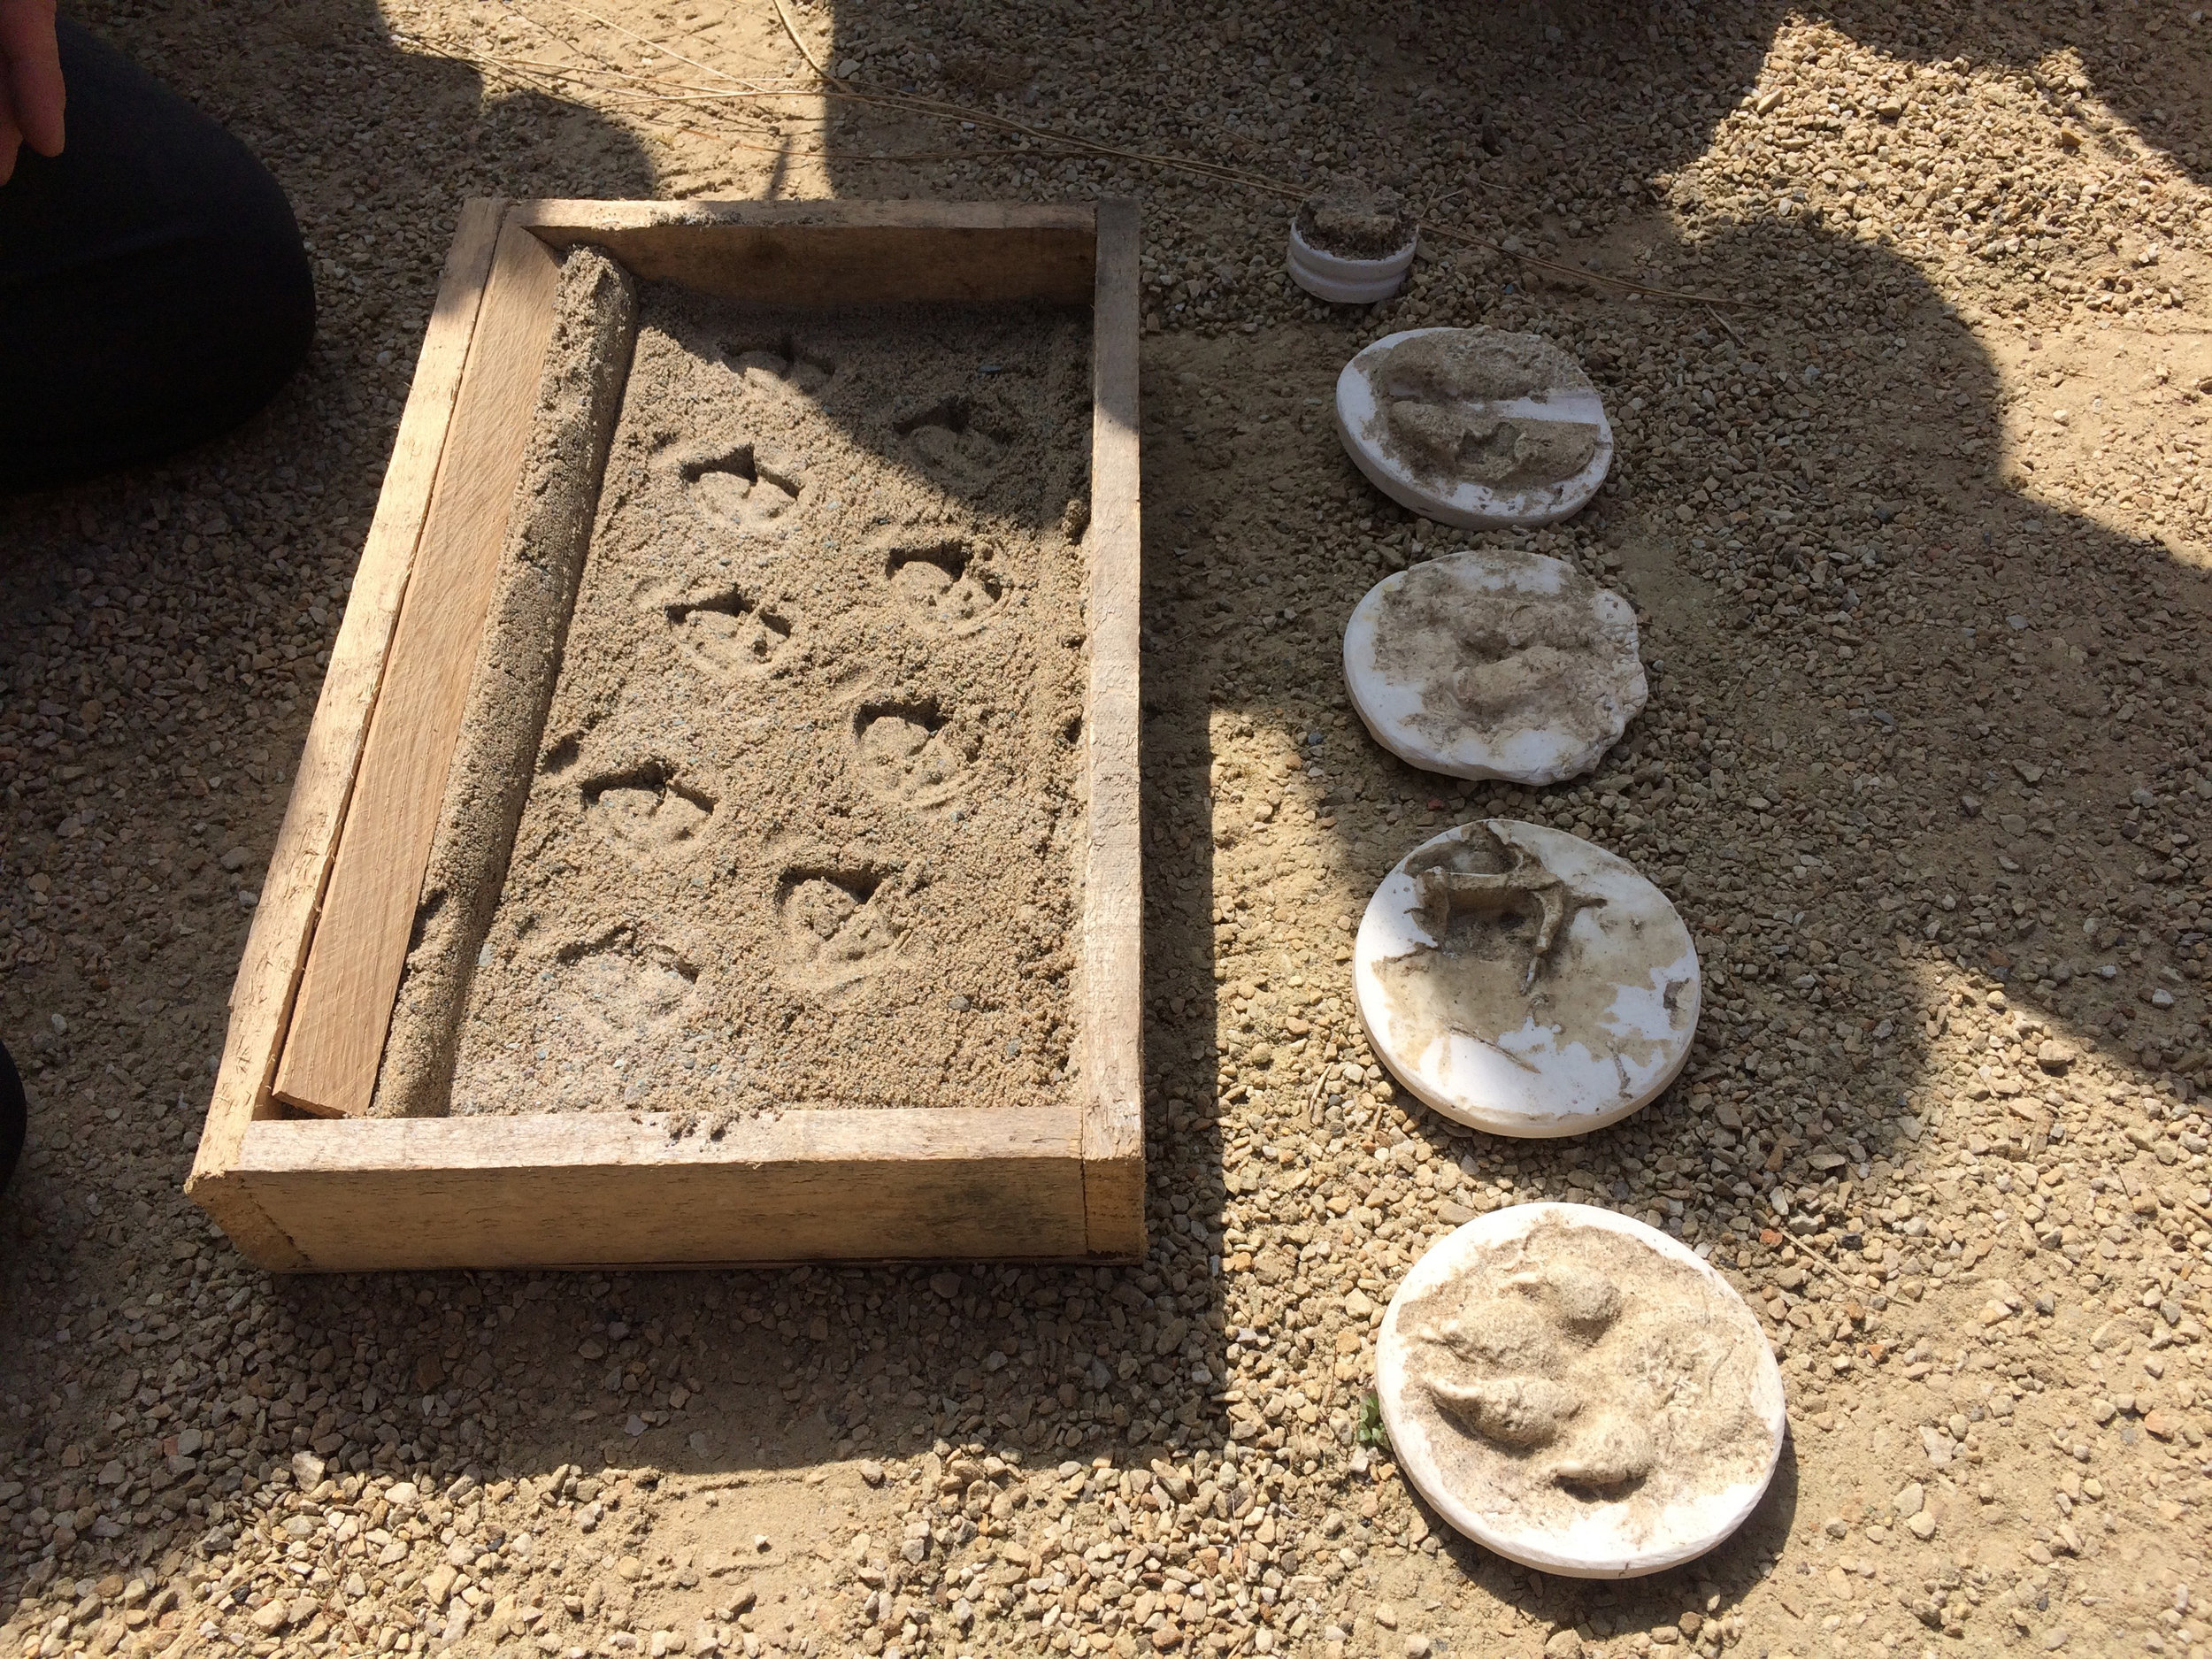 Superfolk had made casts of the animal prints they found close to their studio in Mayo. They used these to make animal prints in sand, and hid them throughout the garden for the children to discover....